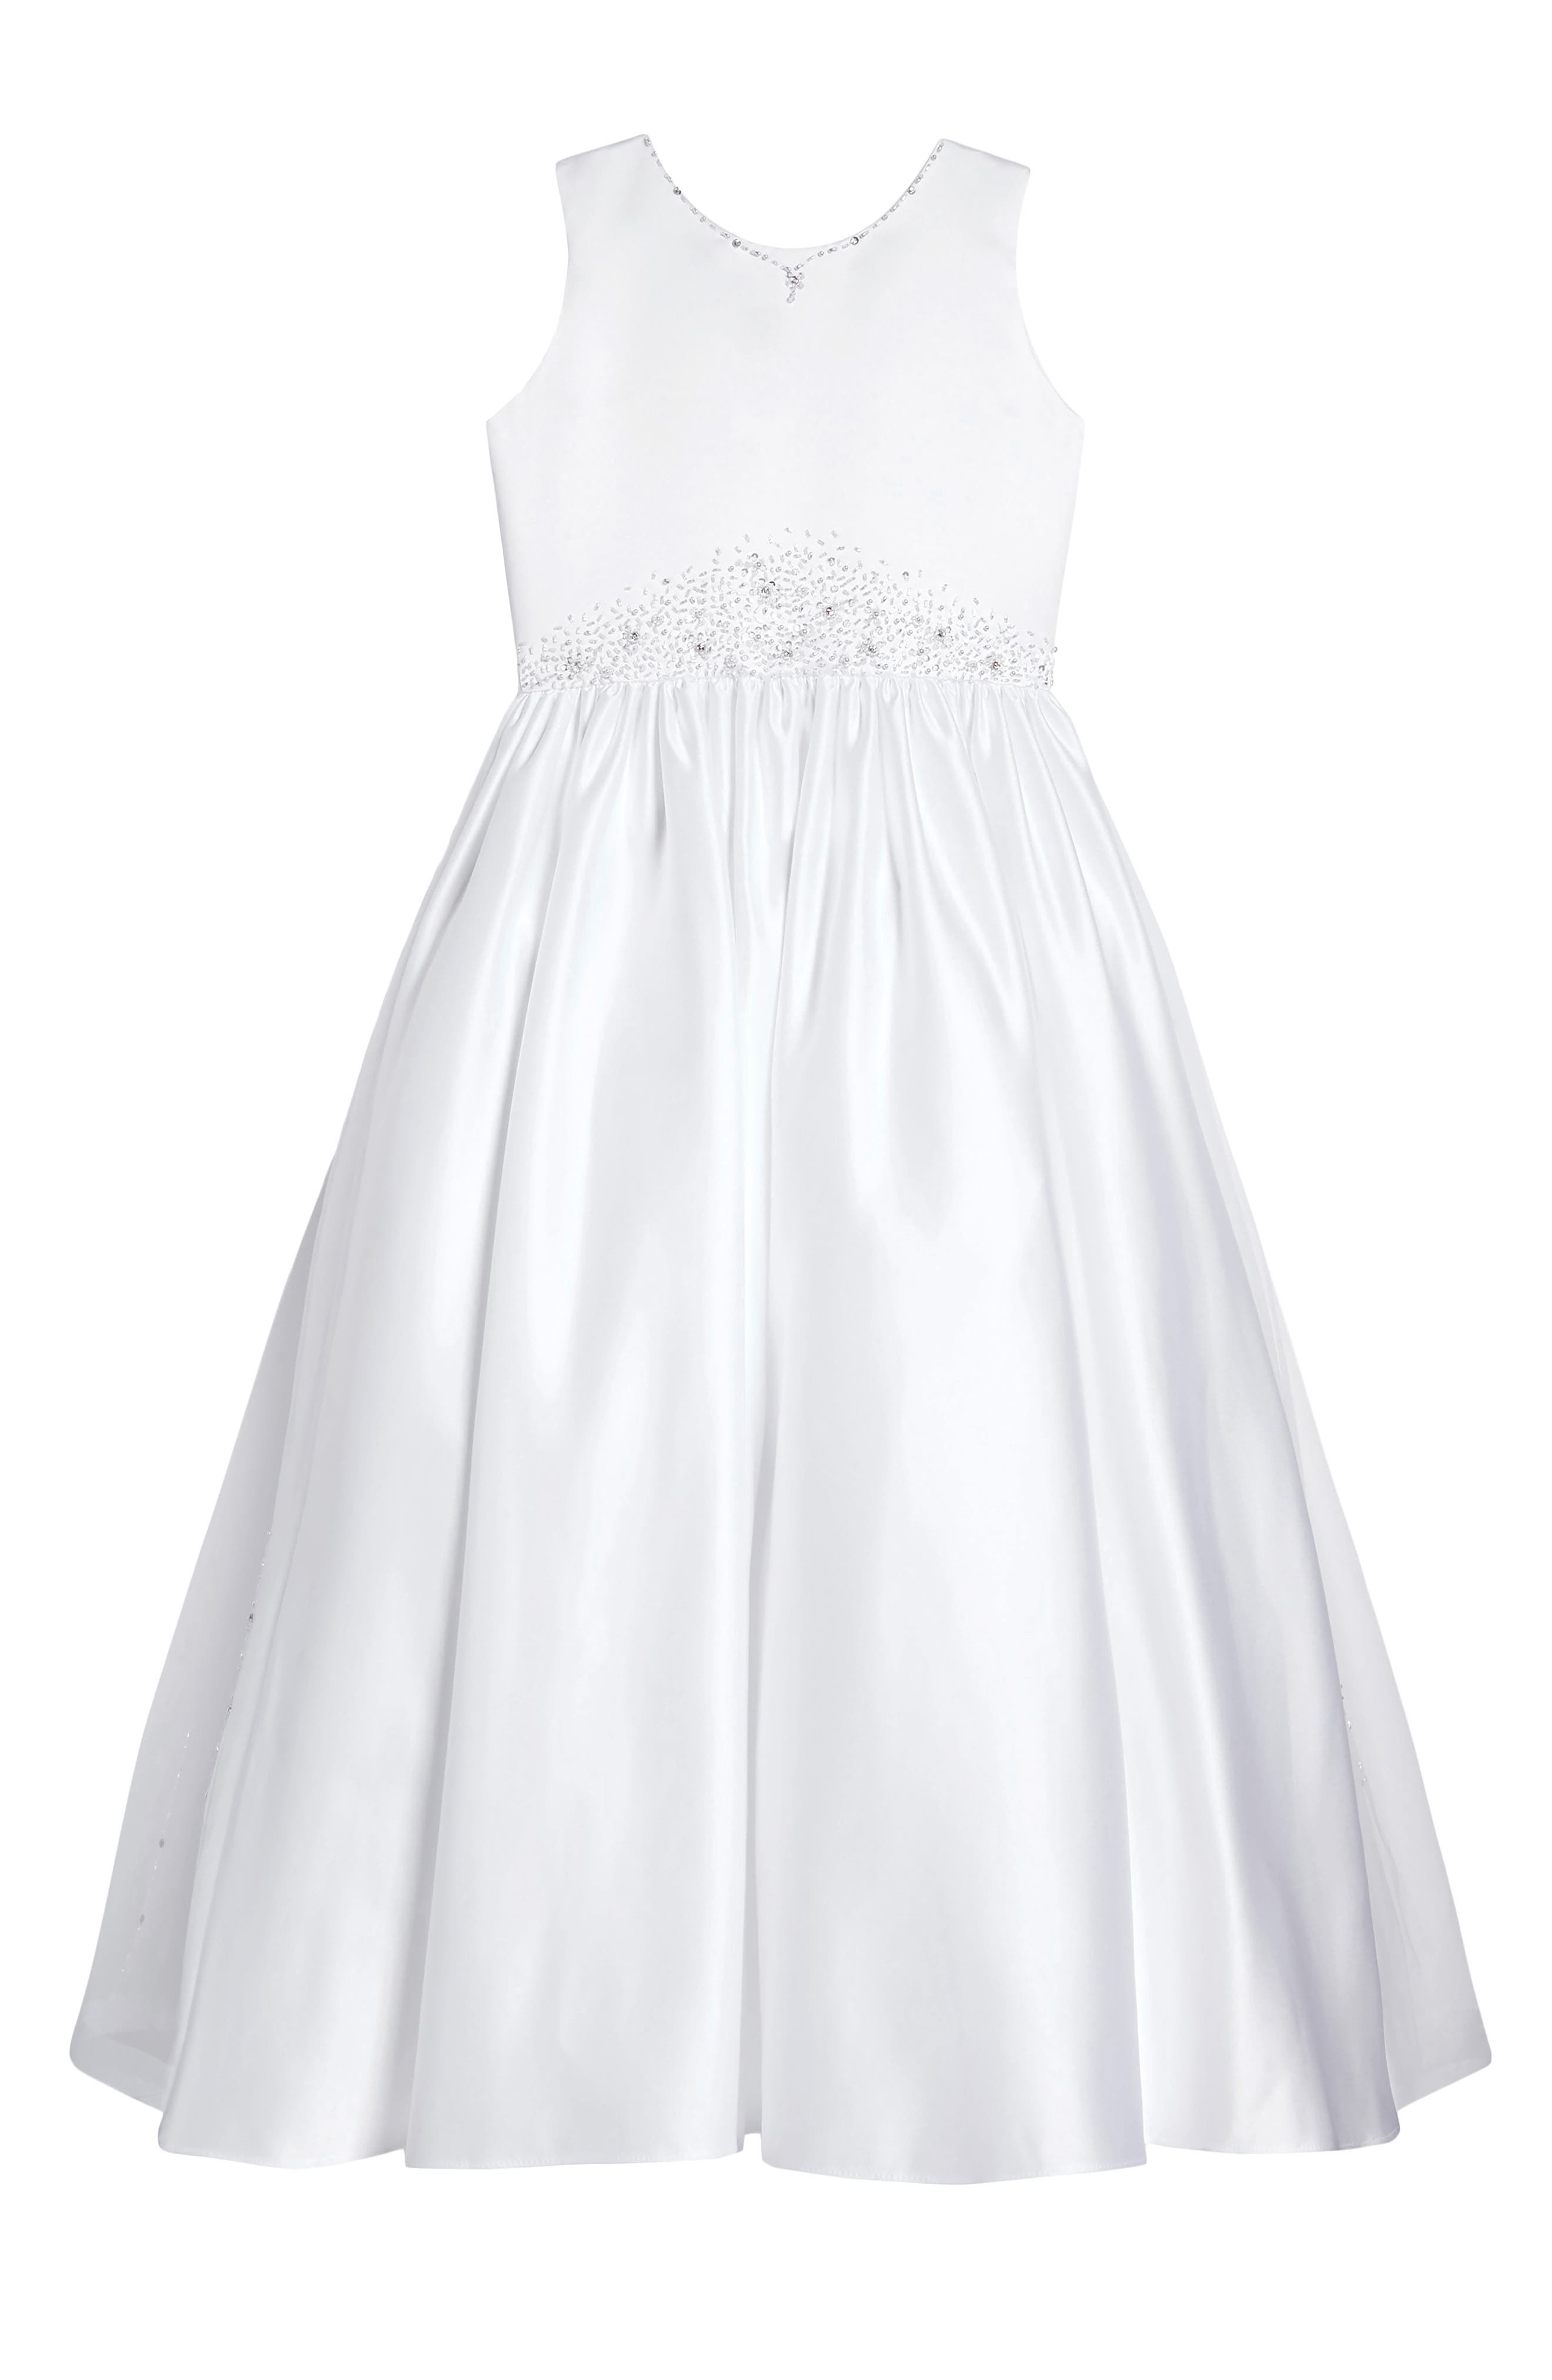 Satin & Tulle First Communion Dress,                         Main,                         color, 100